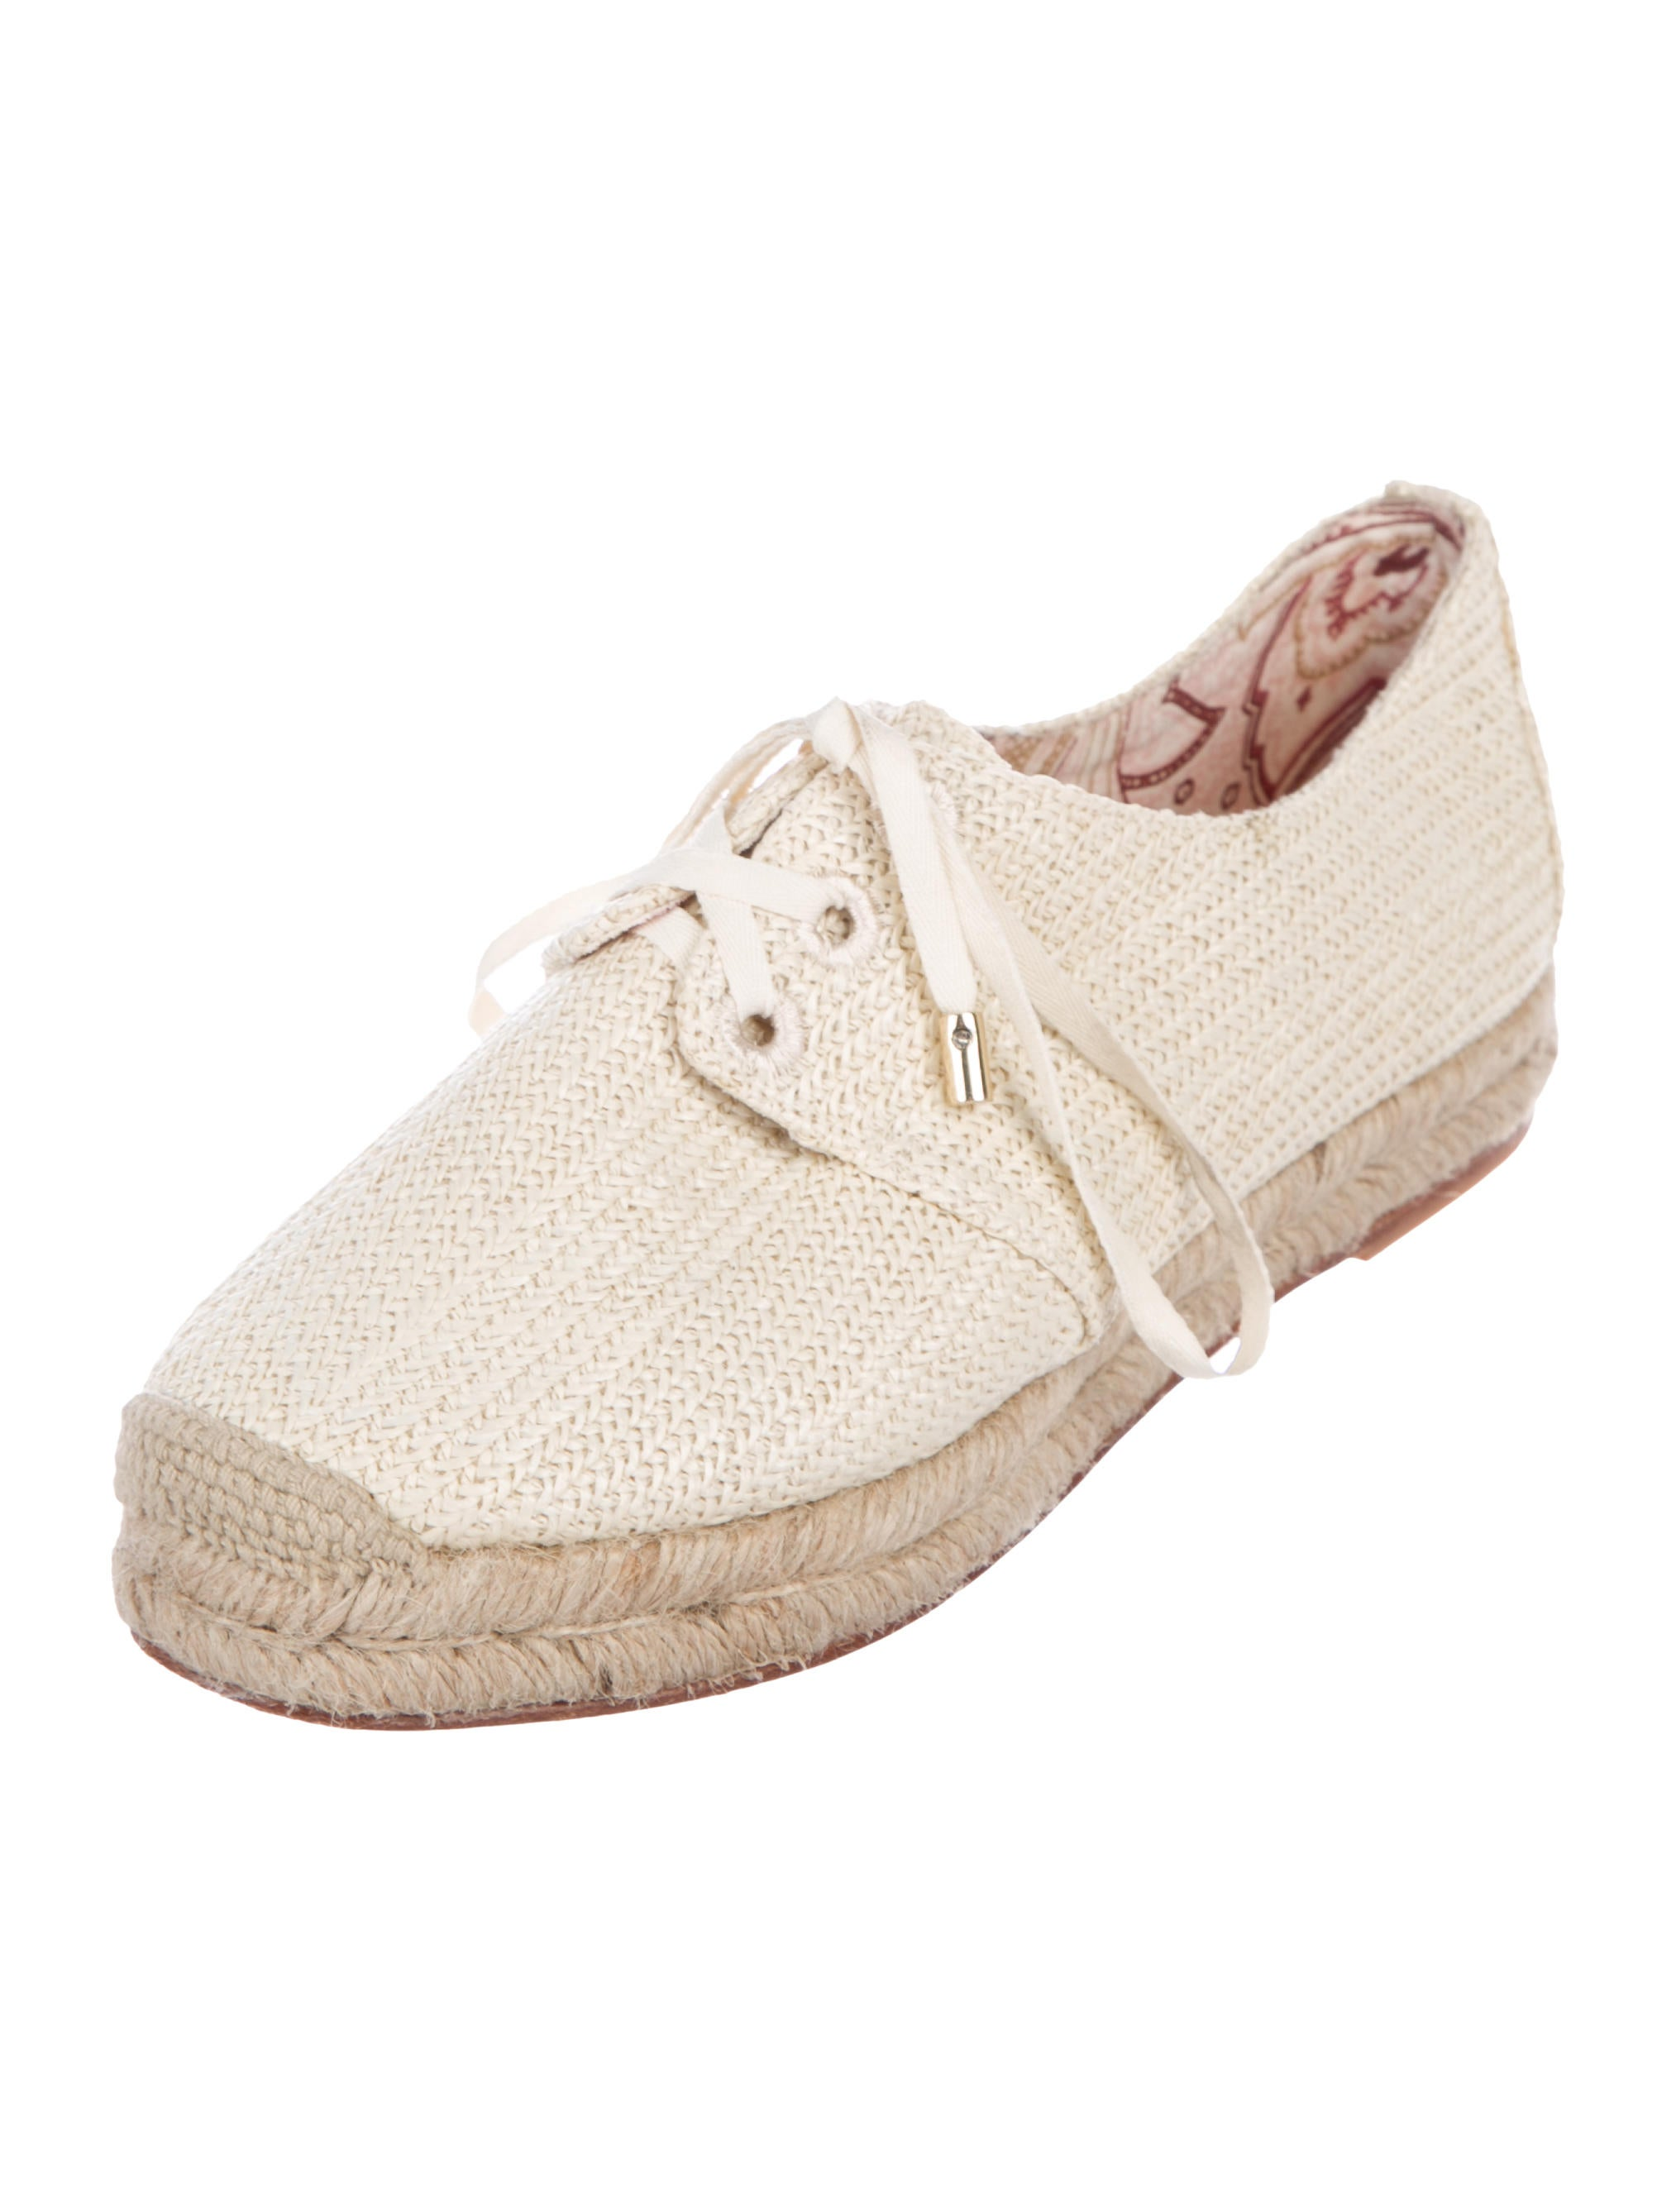 discount price clearance official Joie Straw Espadrille Flats cheap 2015 new rdceEeE7